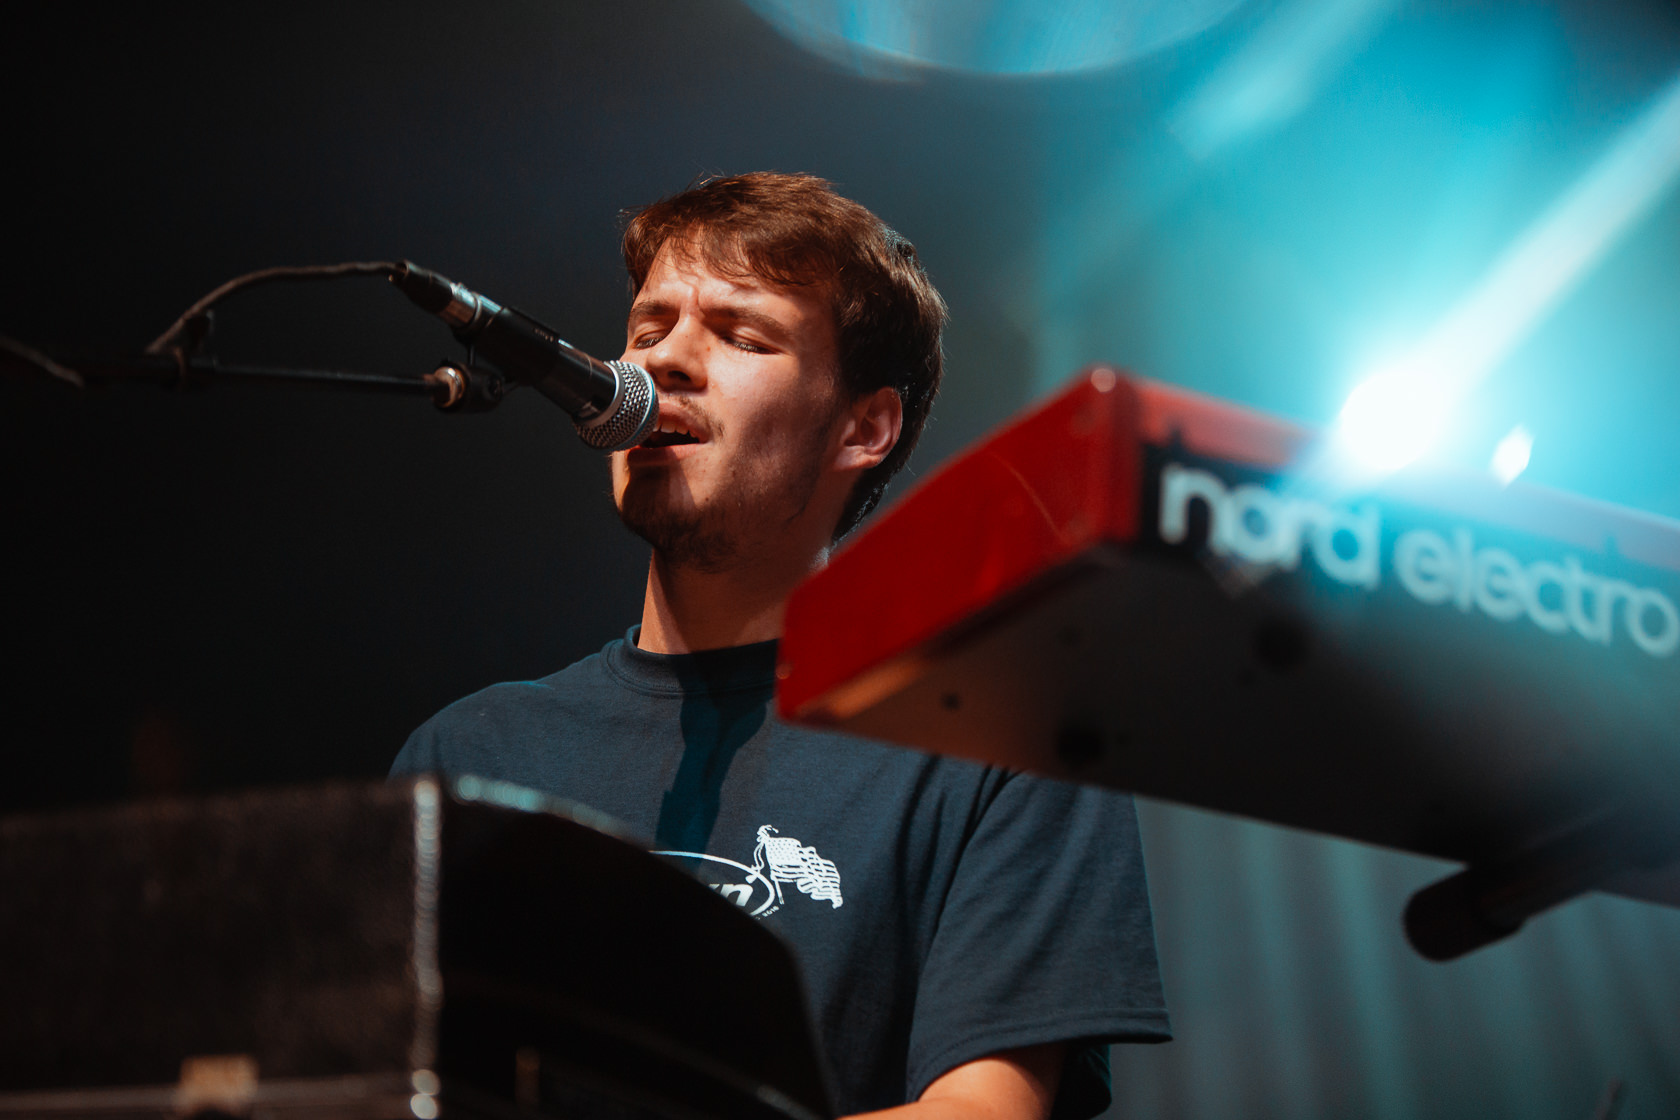 180813-kirby-gladstein-photography-rex-orange-county-concert-fonda-la-3663.jpg